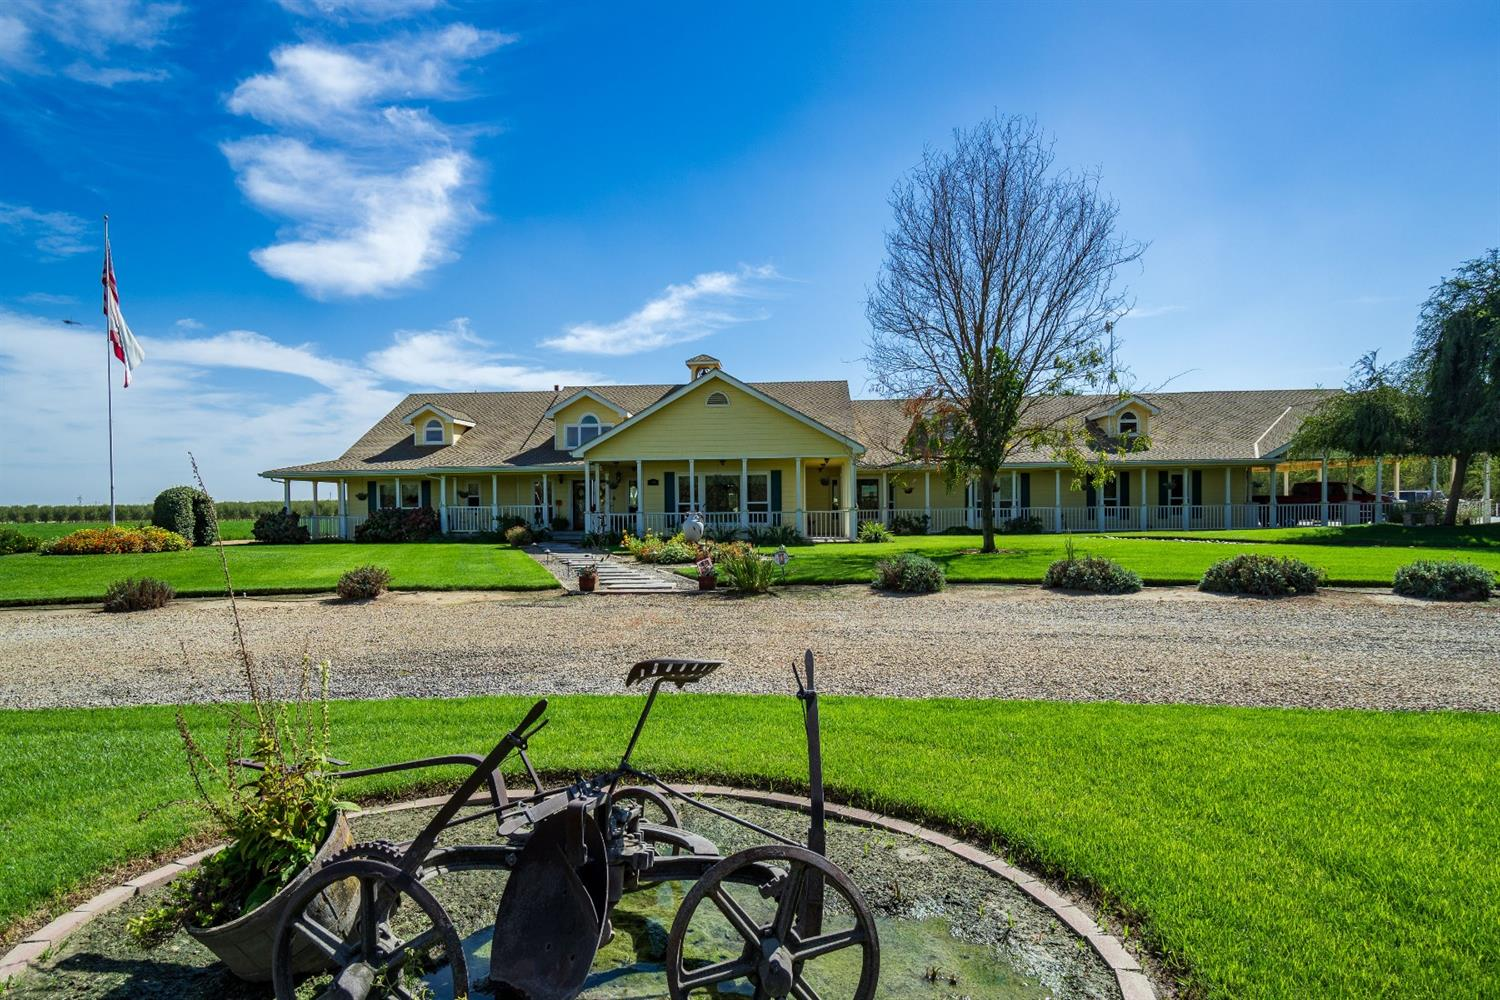 !8.66 acres, a Fabulous 5200sqft custom home with every feature I have ever seen, aprox 15 ac in Alfalfa, FID water, 2 - 75x40 steel buildings, fenced areas for equipment/hay storage, entertainent. This is the peak of elegance,entertainment, farming, business life and Family.